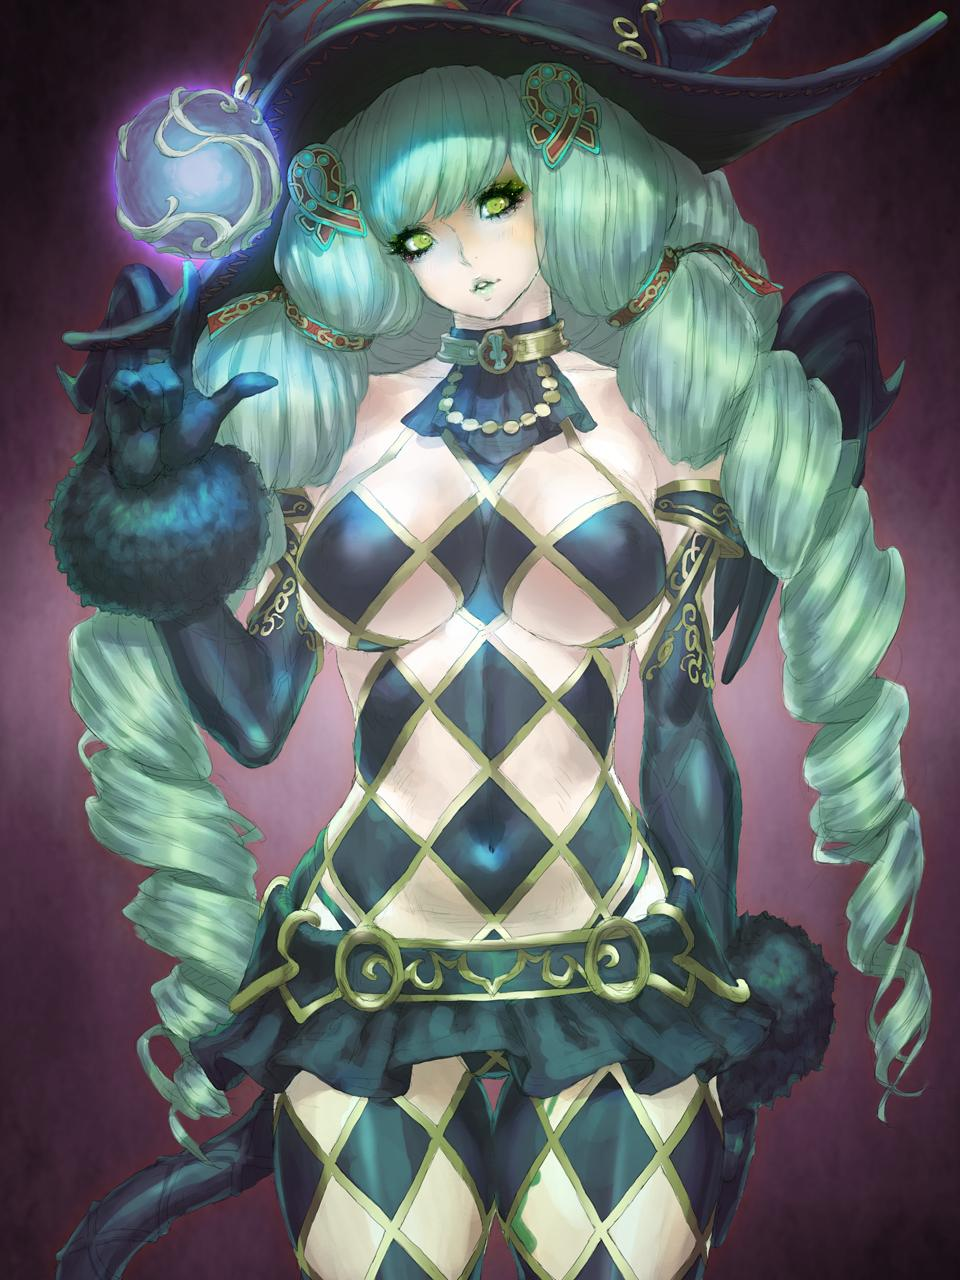 1girl black_gloves black_headwear breasts daichan_mona drill_hair elbow_gloves fiore_brunelli gloves green_hair hat highres large_breasts long_hair looking_at_viewer makeup revealing_clothes skirt solo star_ocean star_ocean_integrity_and_faithlessness witch_hat yellow_eyes